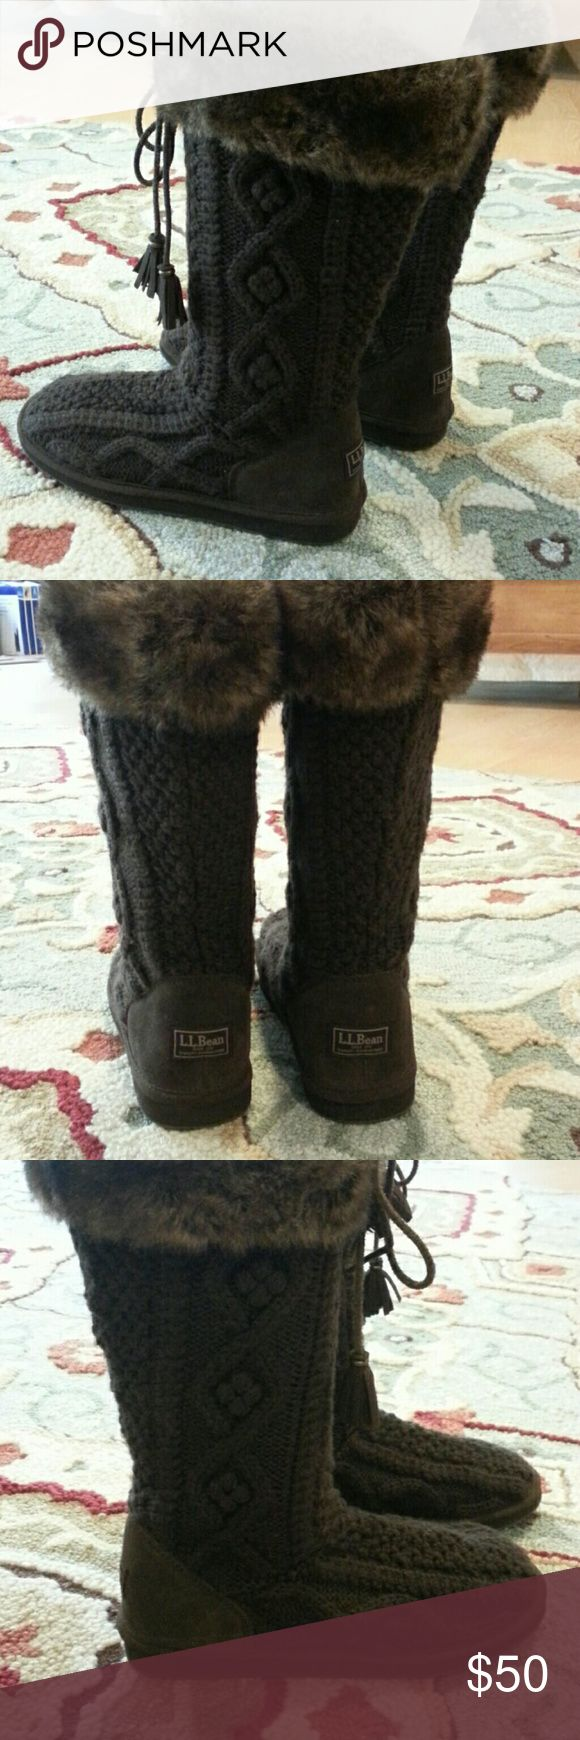 Women's LL Bean cable boots with faux fur, size 9. Women's LL Bean cable boots with faux fur, size 9.   These were worn twice.  The boots sit mid calf and are small/tight in the calf.  Feel free to ask questions. L.L. Bean Shoes Winter & Rain Boots